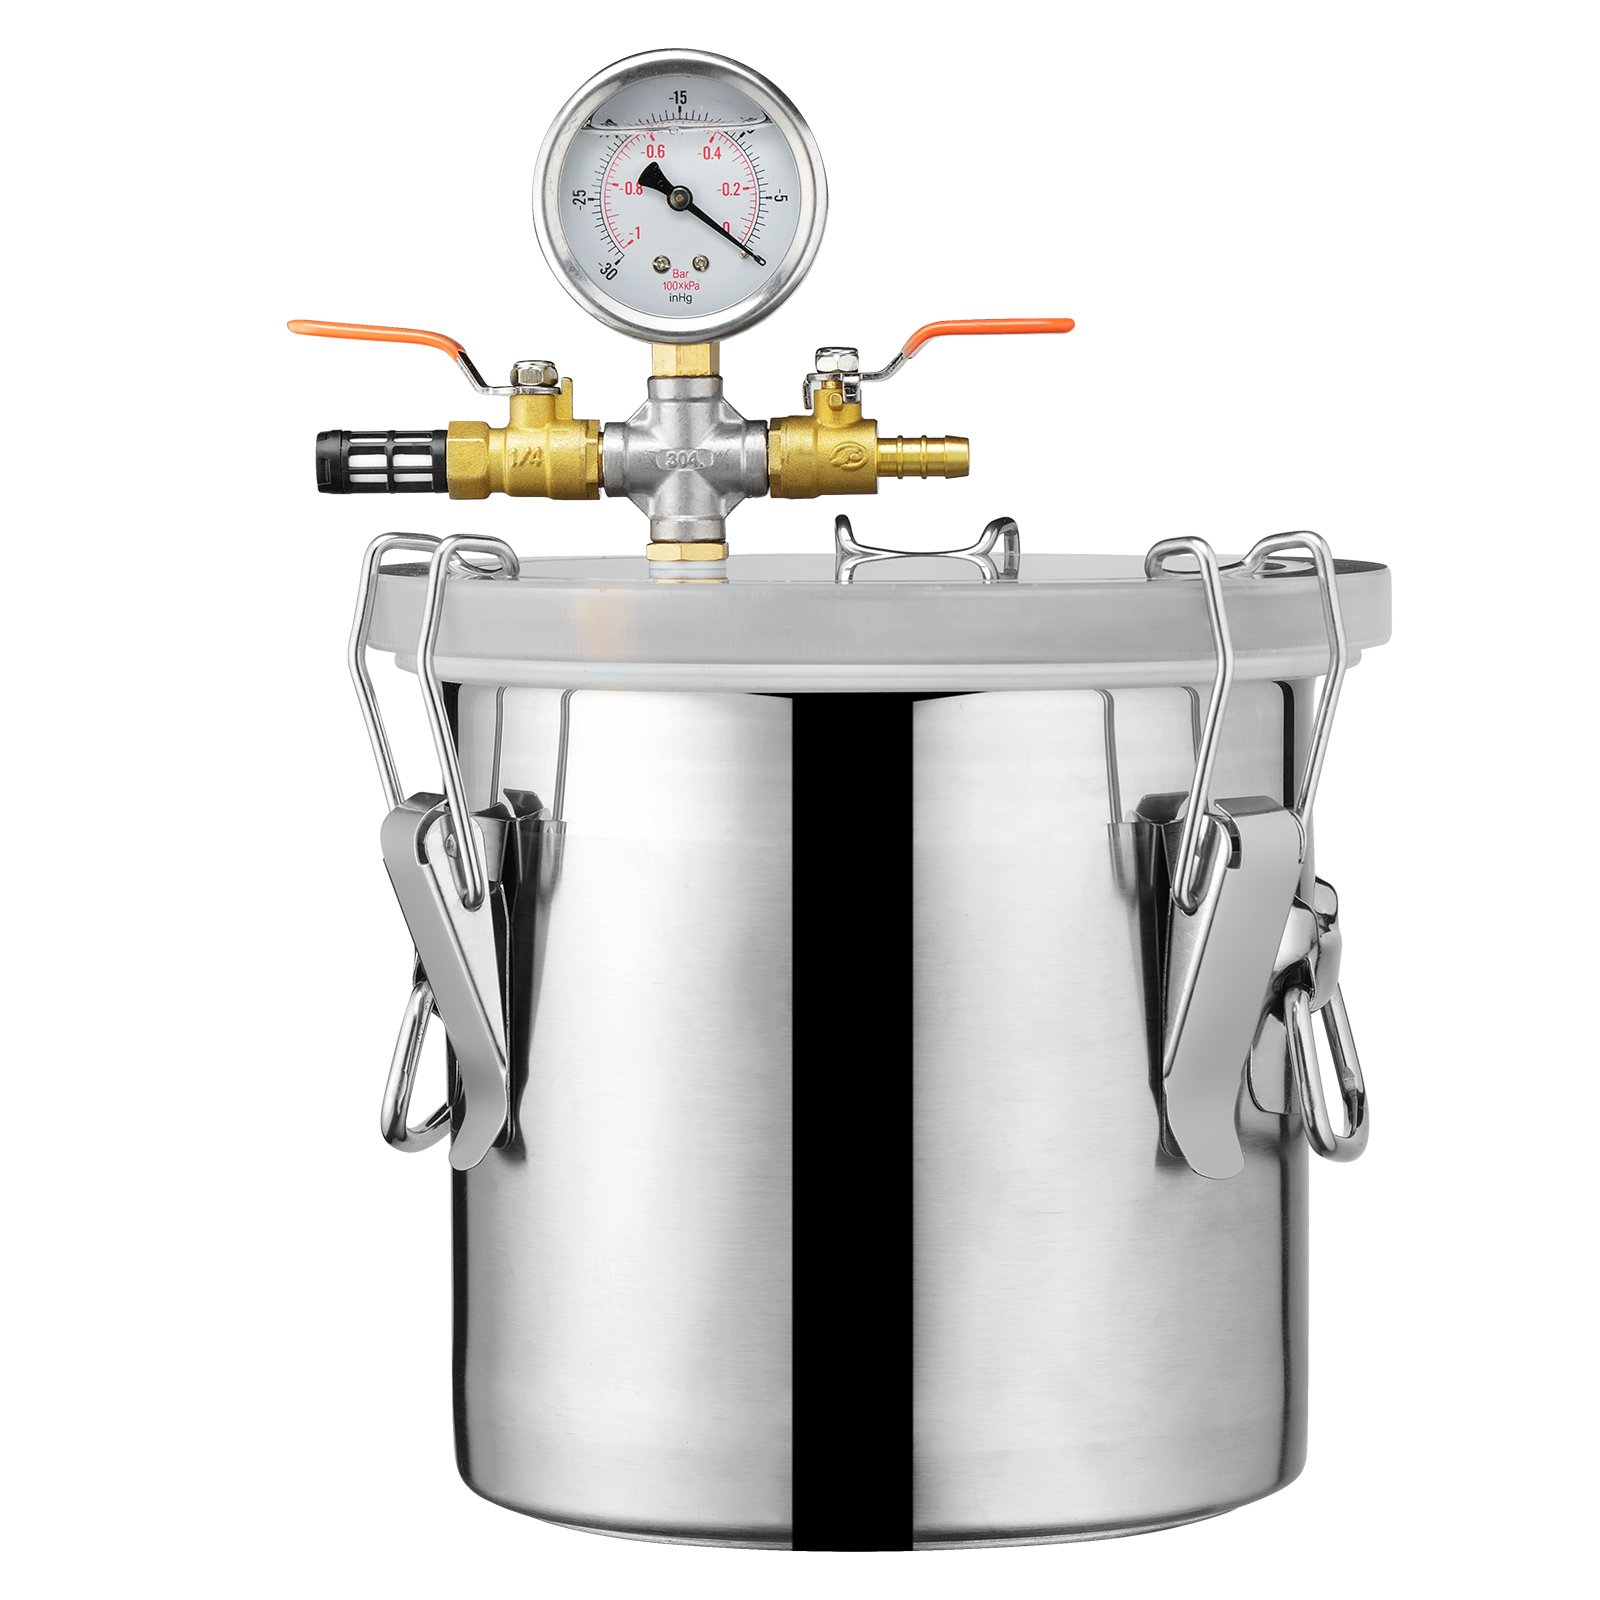 SUNCOO Stainless Steel Vacuum Chamber for Degassing Urethanes, Resins, Silicones and Epoxies,3 Gallon